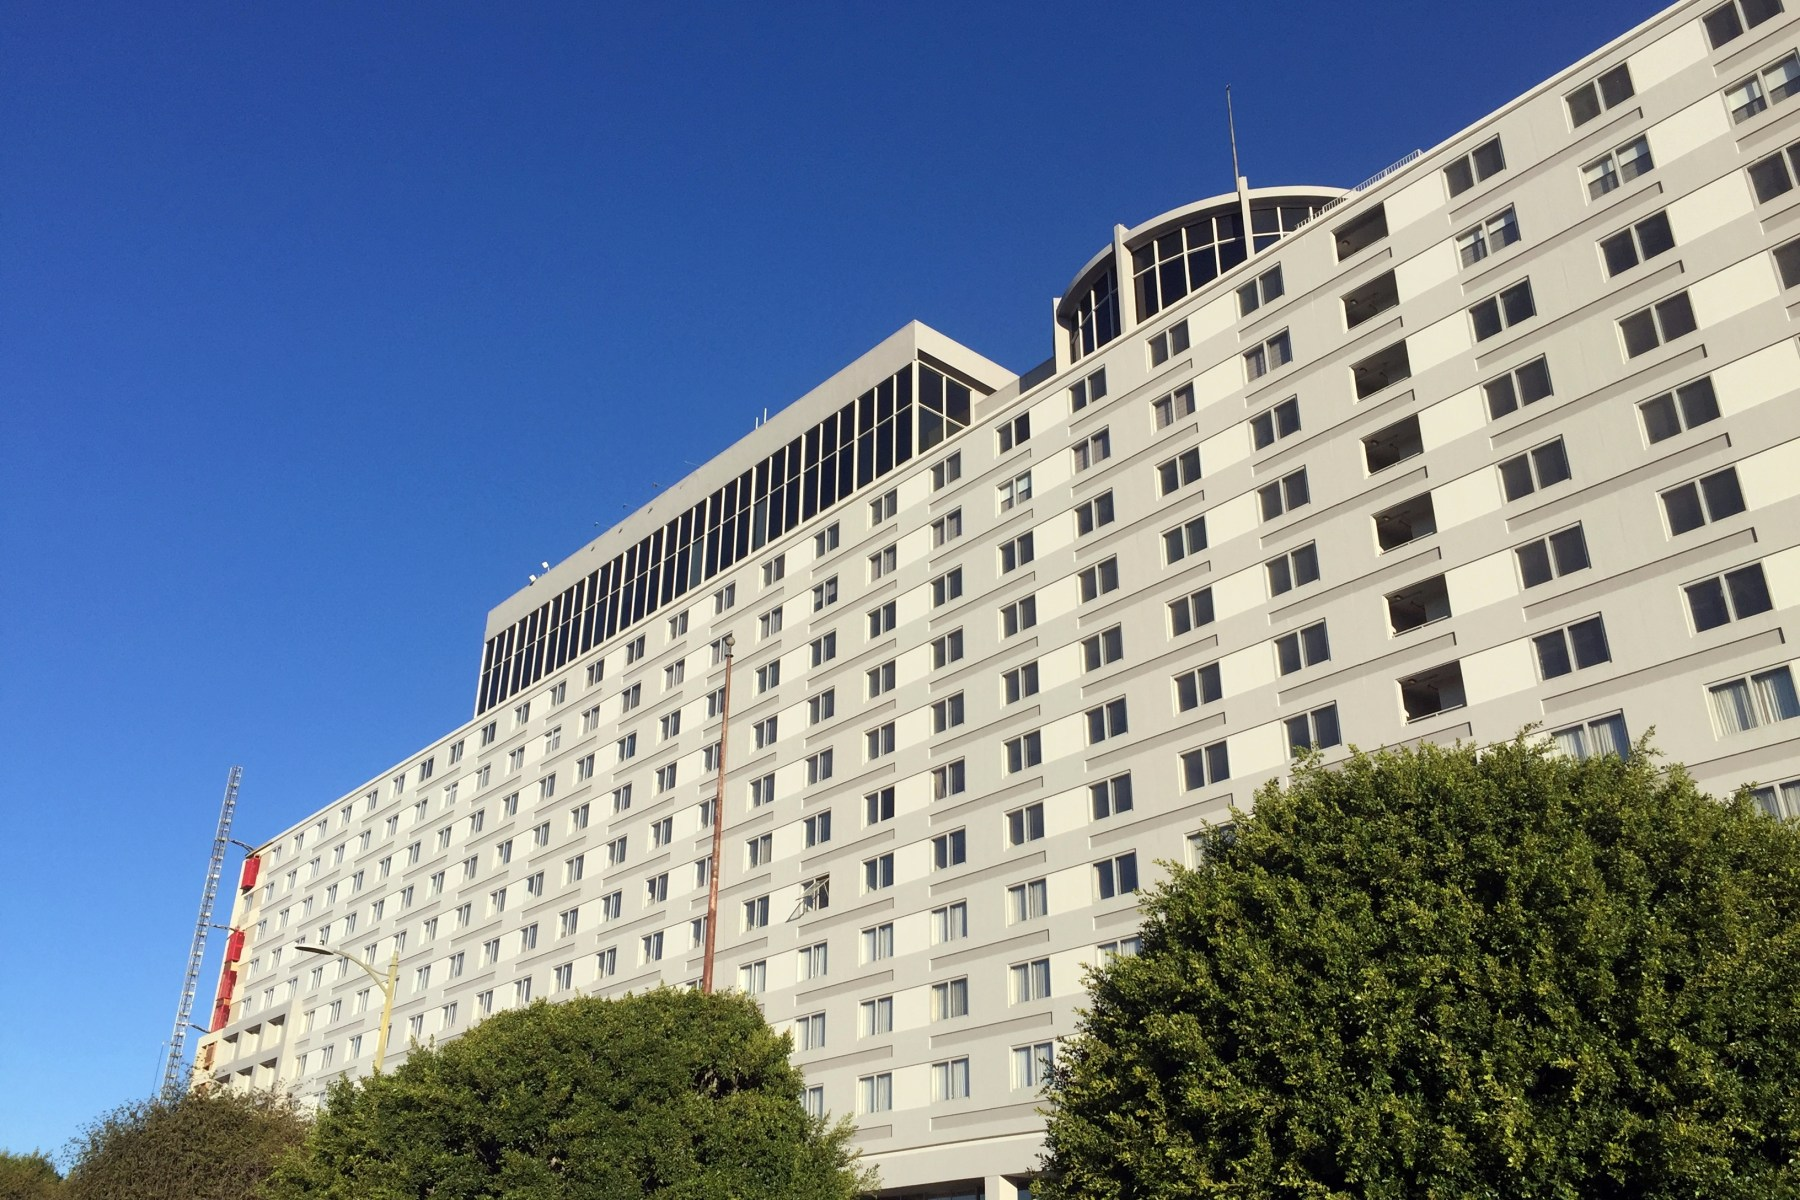 Los Angeles Hotels Customer Service Hours